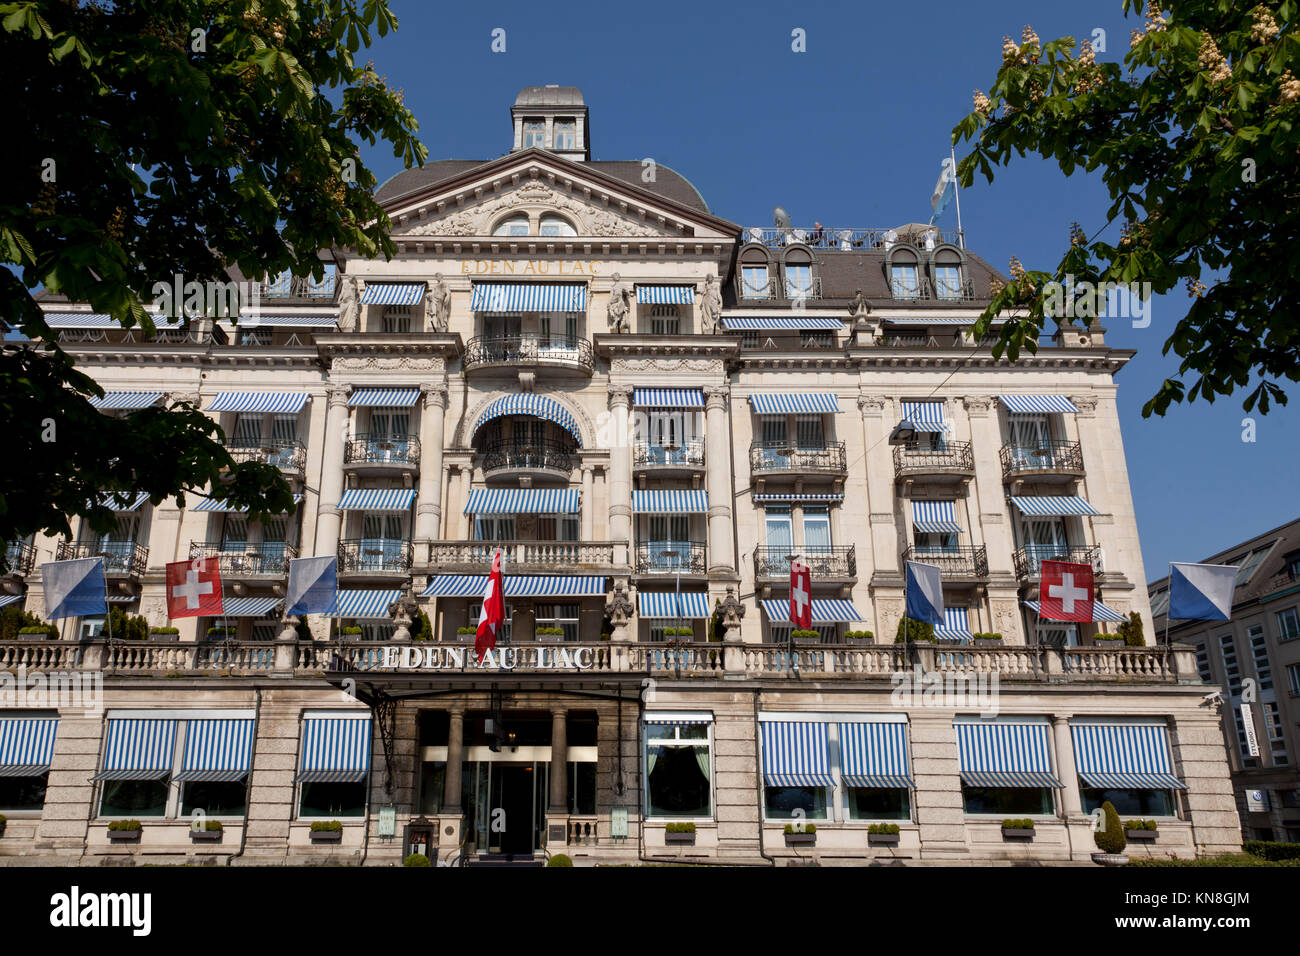 Hotel Eden au Lac, near Zurich lake, Zurich, Switzerland - Stock Image